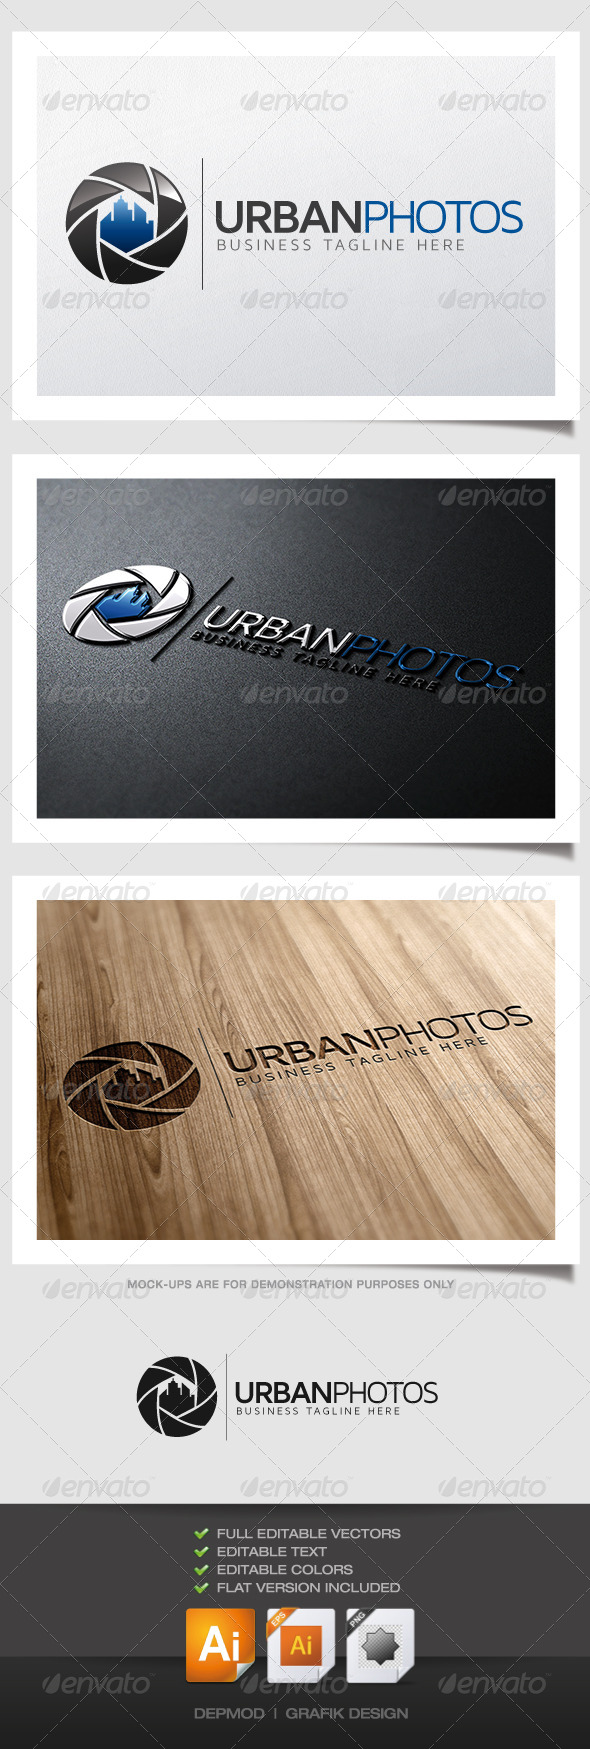 GraphicRiver Urban Photos Logo 4872602